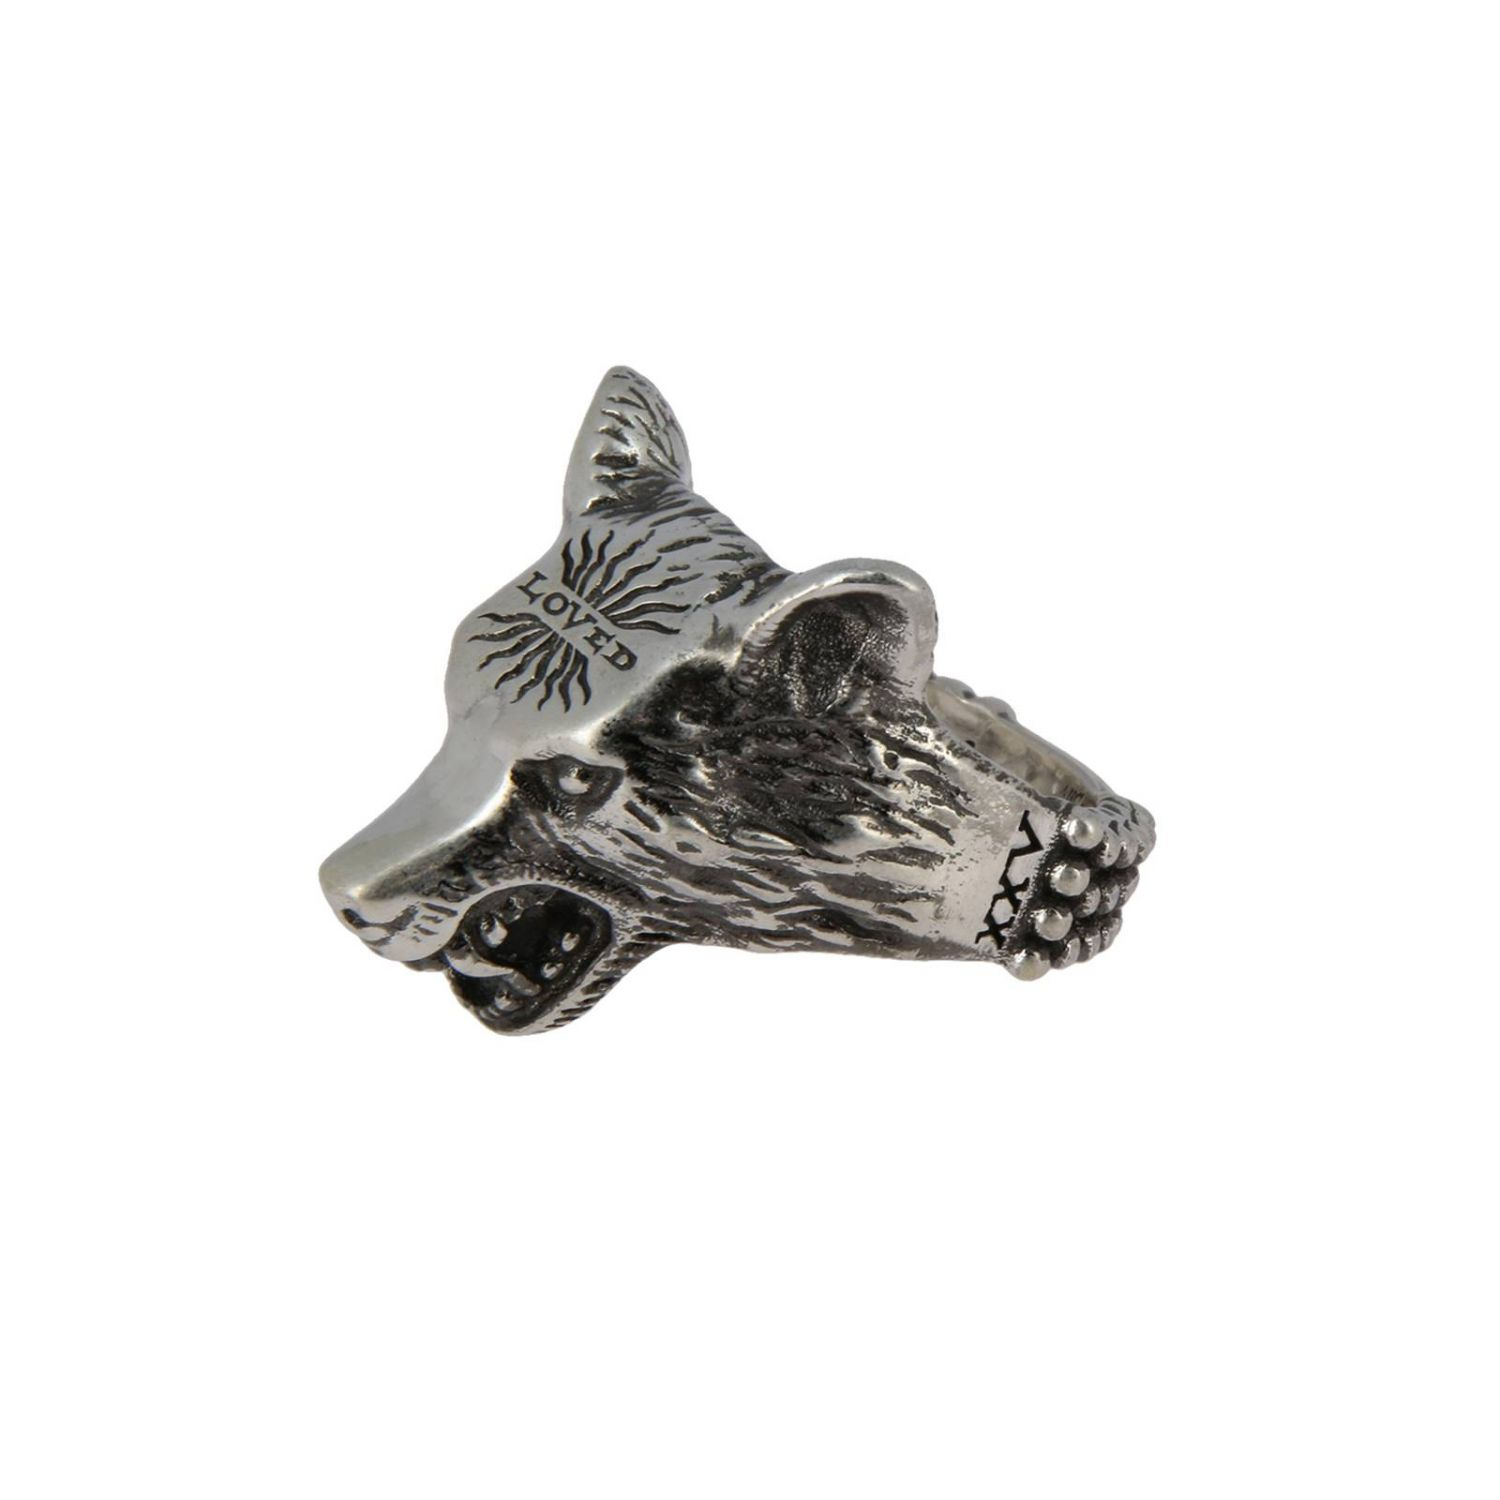 Anello Anger Forest Wolf s in argento sterling con finitura aureco argento 2